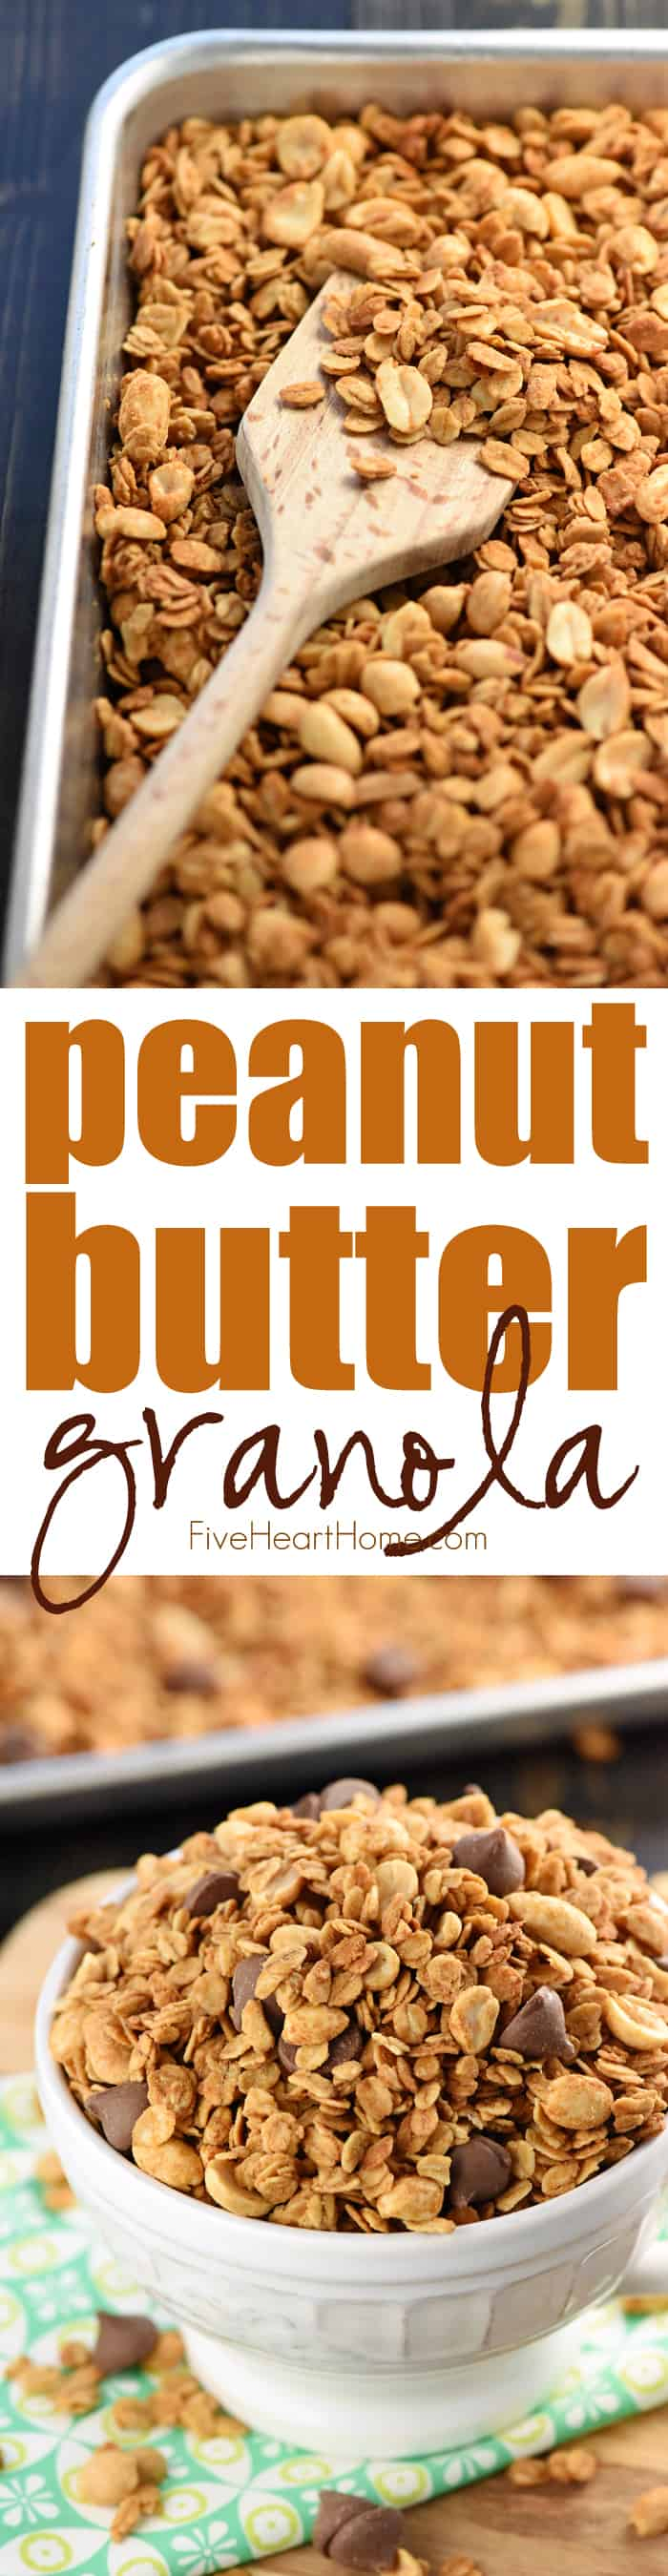 5-Ingredient Peanut Butter Granola Collage with Text Overlay